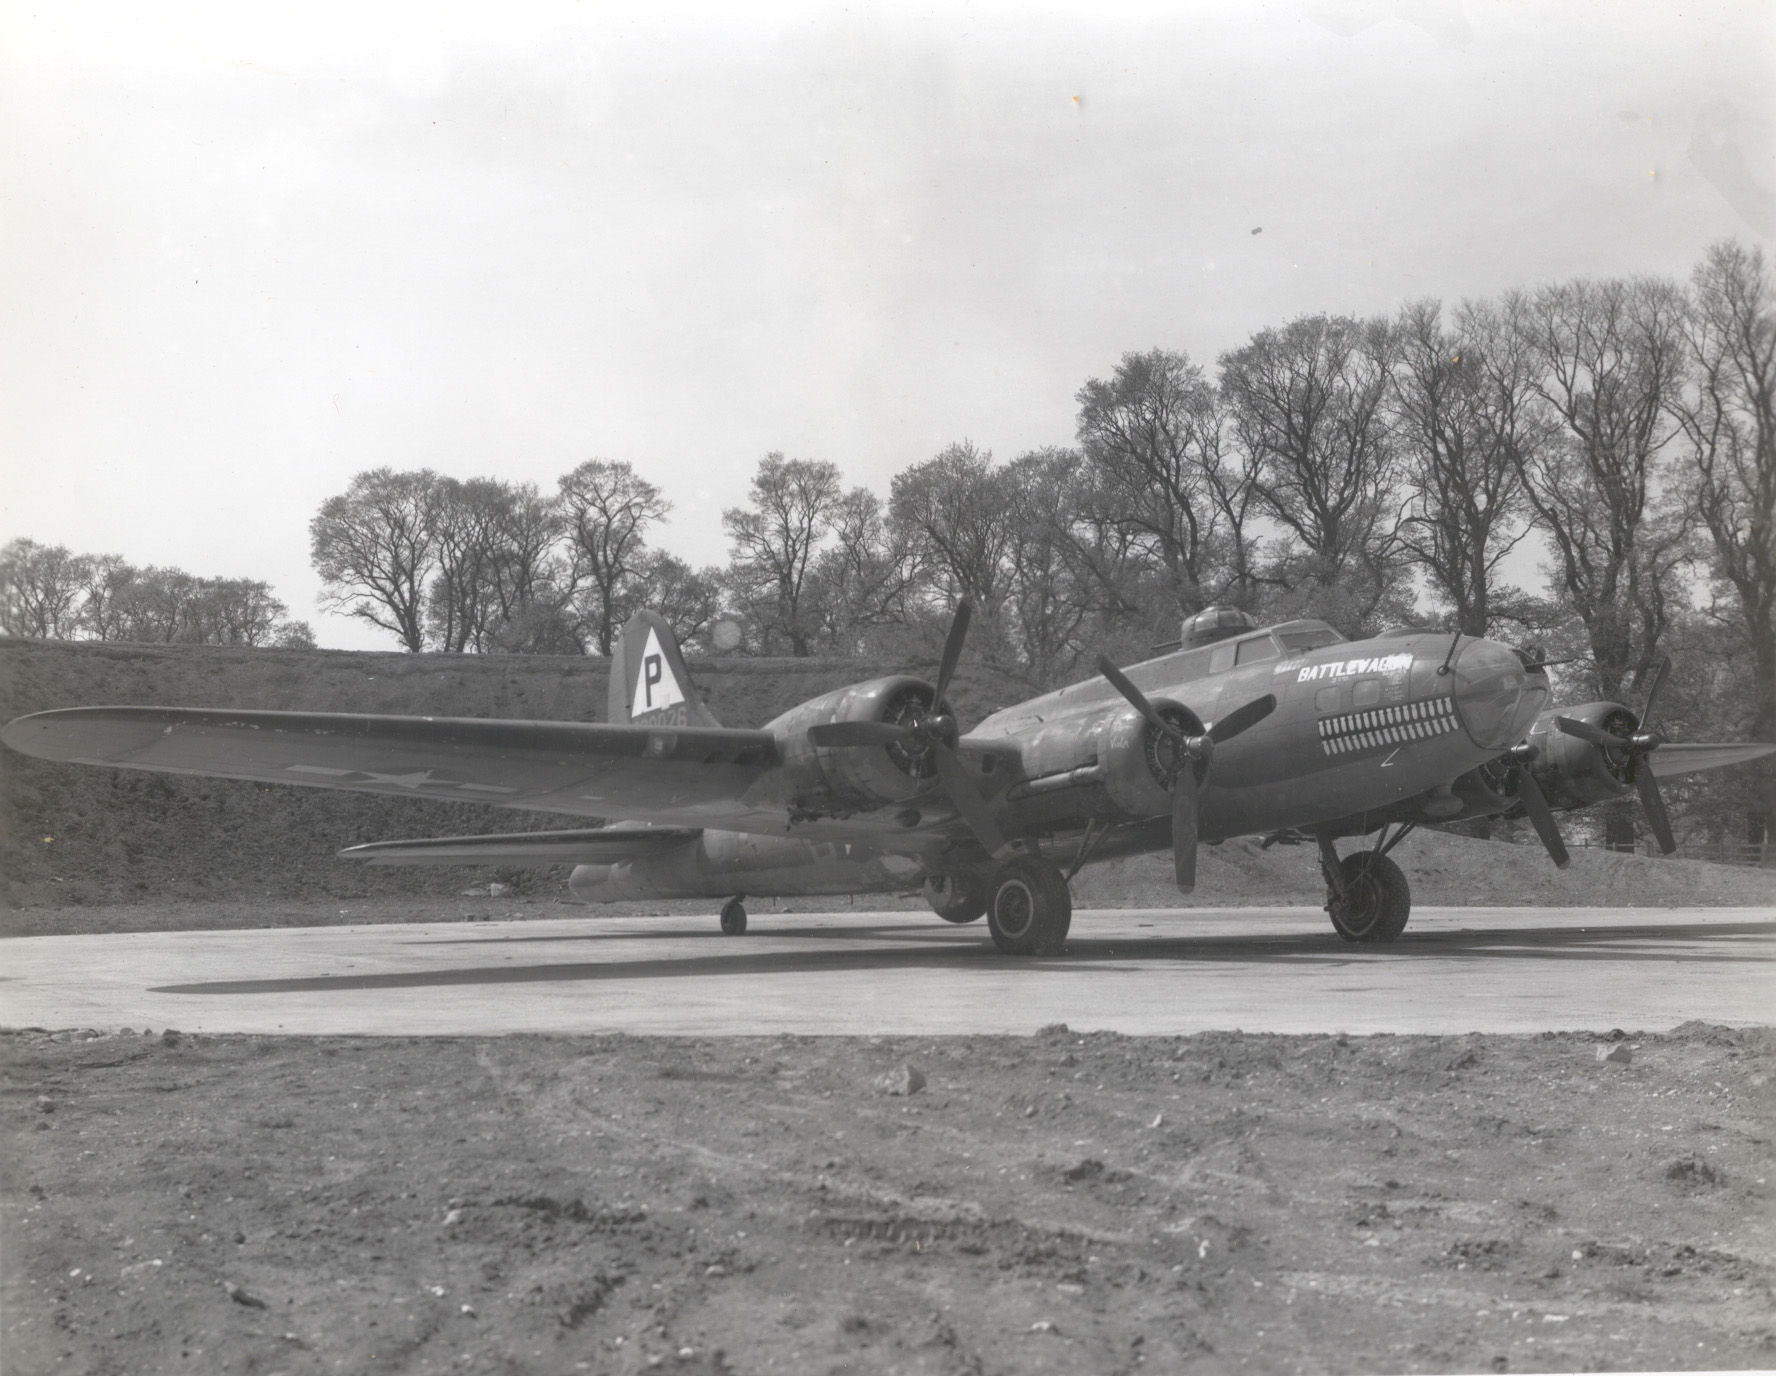 B-17 #42-30026 / Battle Wagon